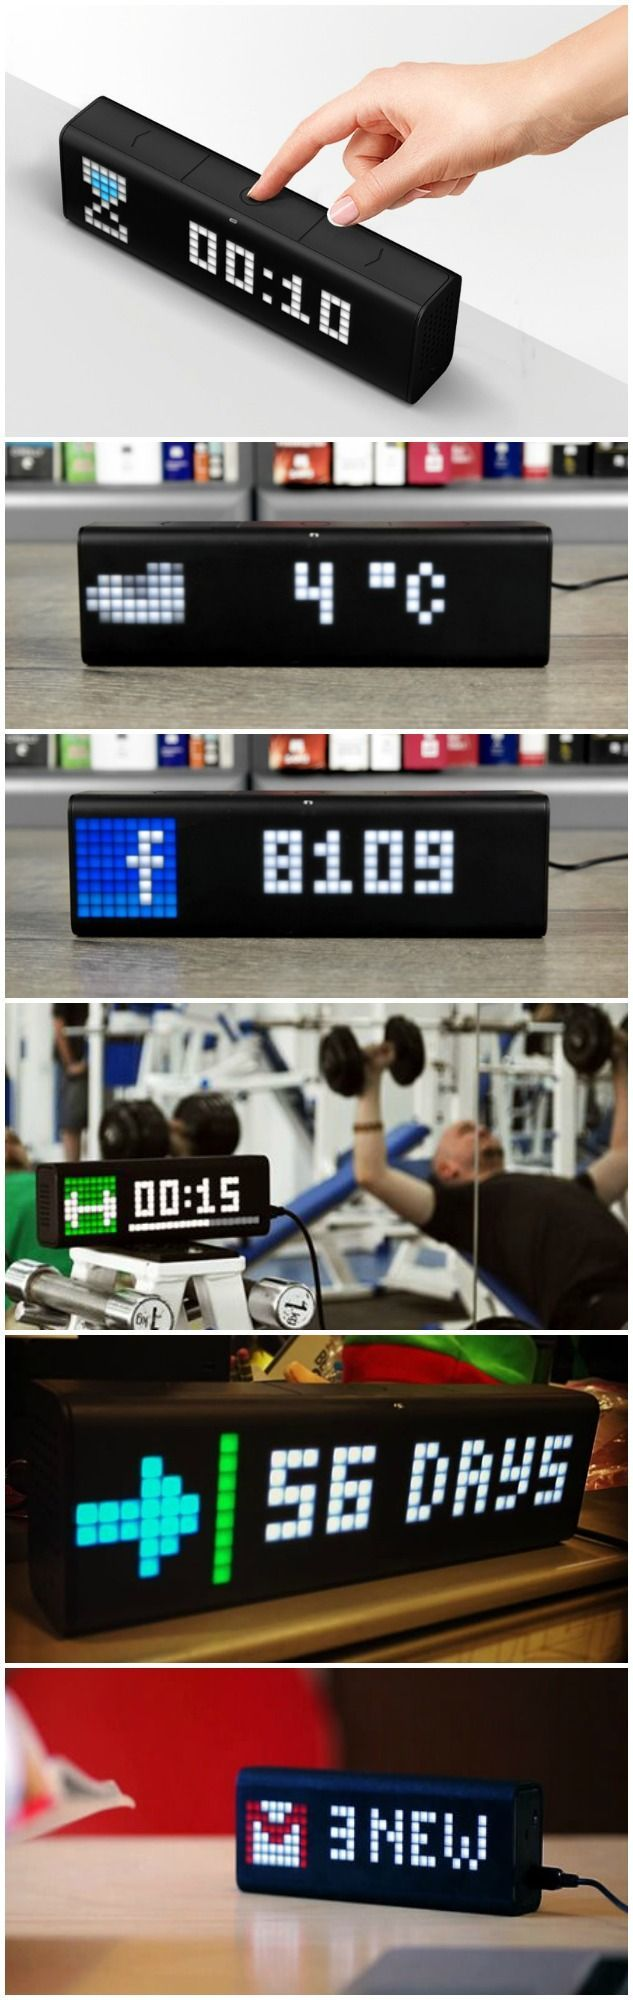 LaMetric Time is the Online Ticker Display for Work and